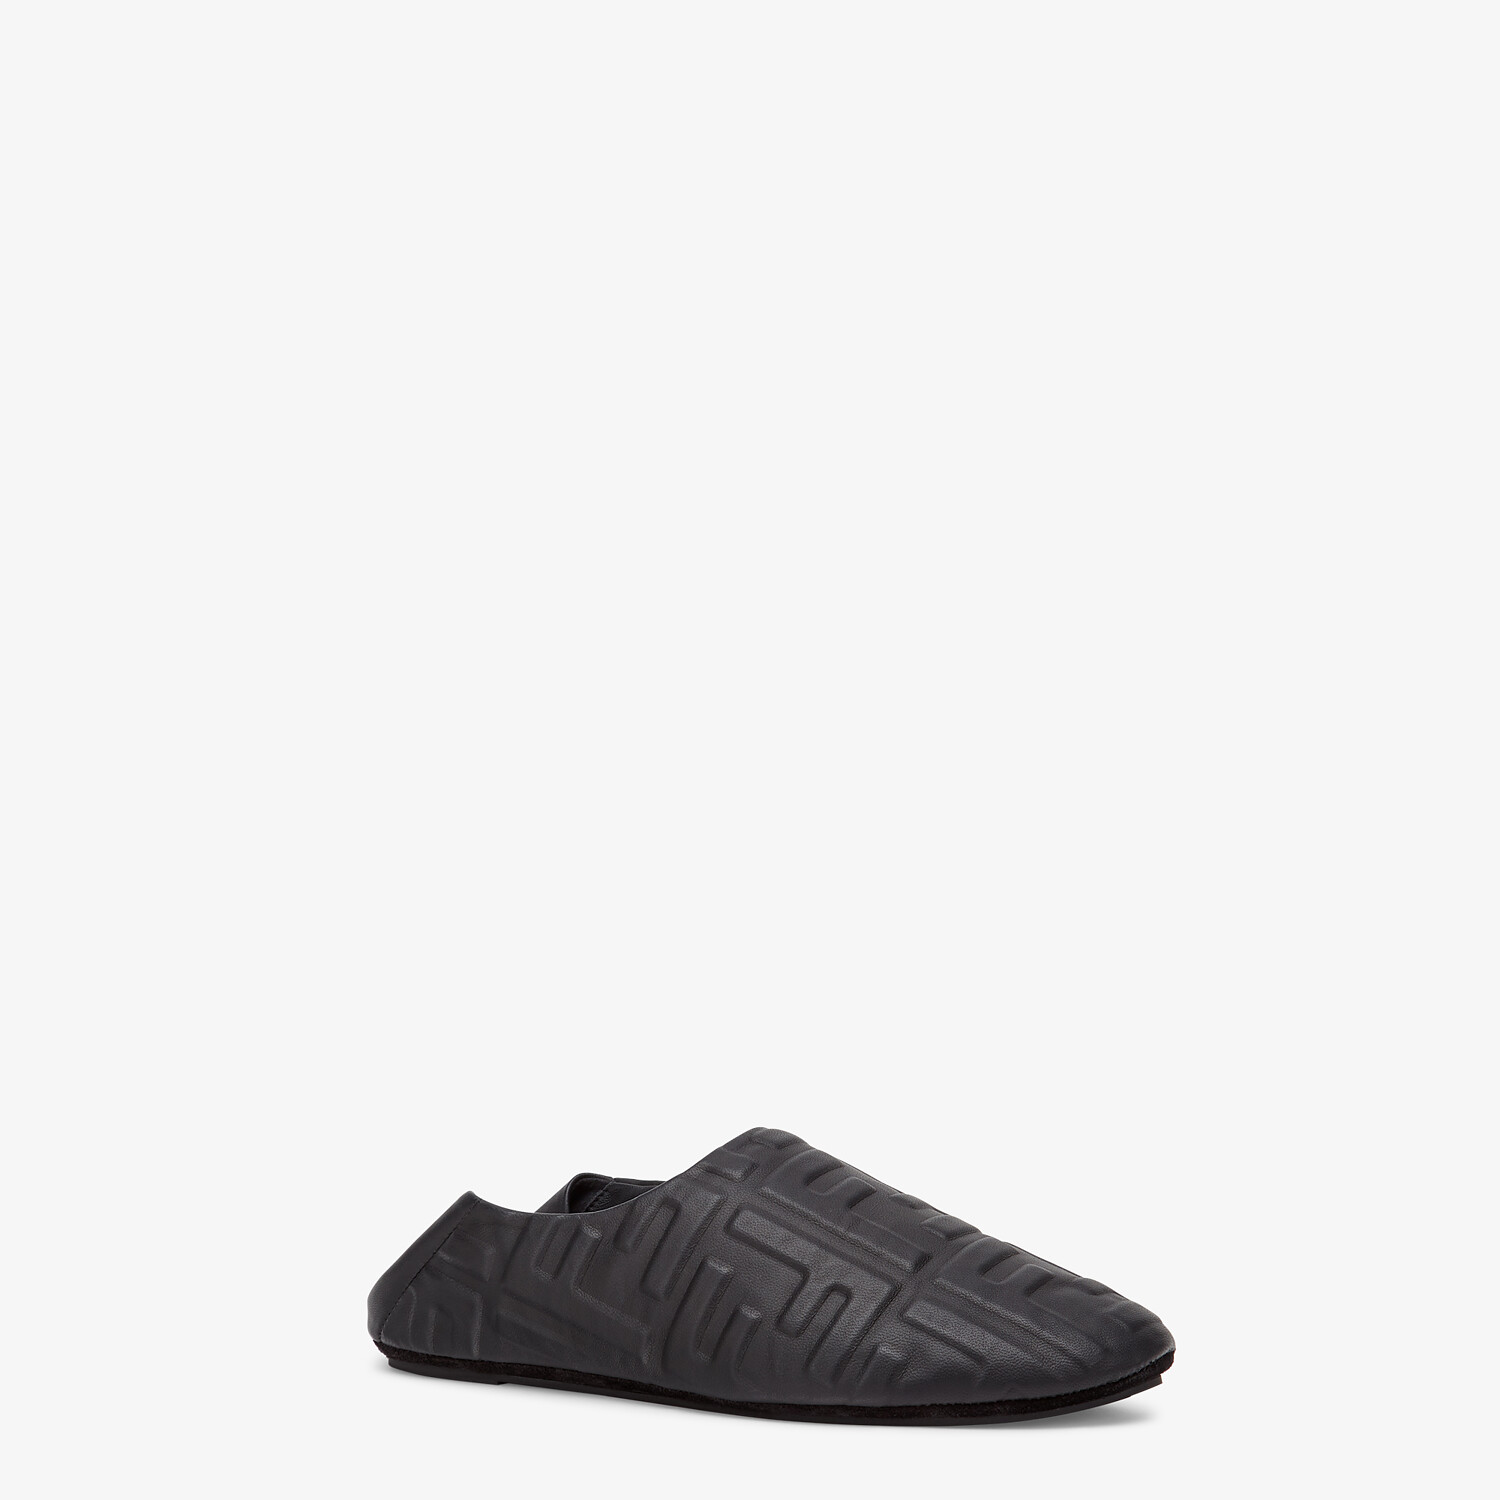 FENDI SLIPPERS - Black nappa leather slippers - view 2 detail